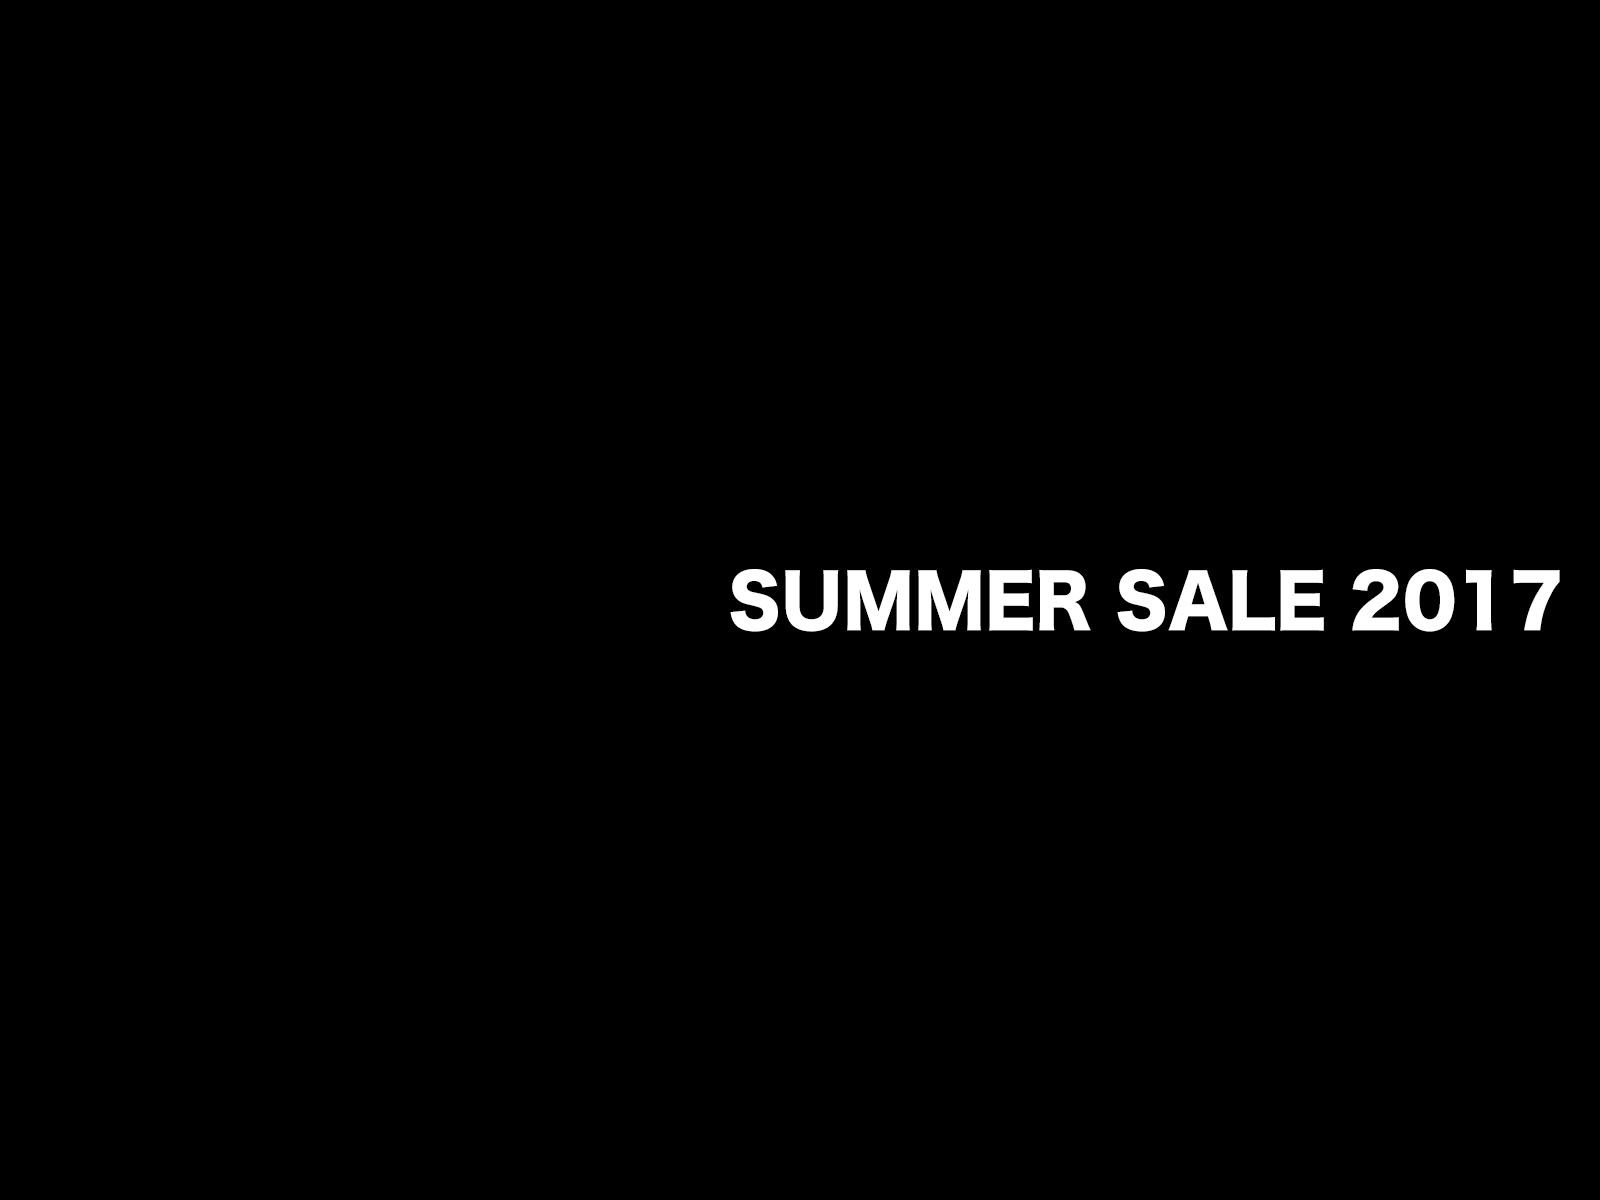 SUMMER SALE 2017 PICK UP ITEM